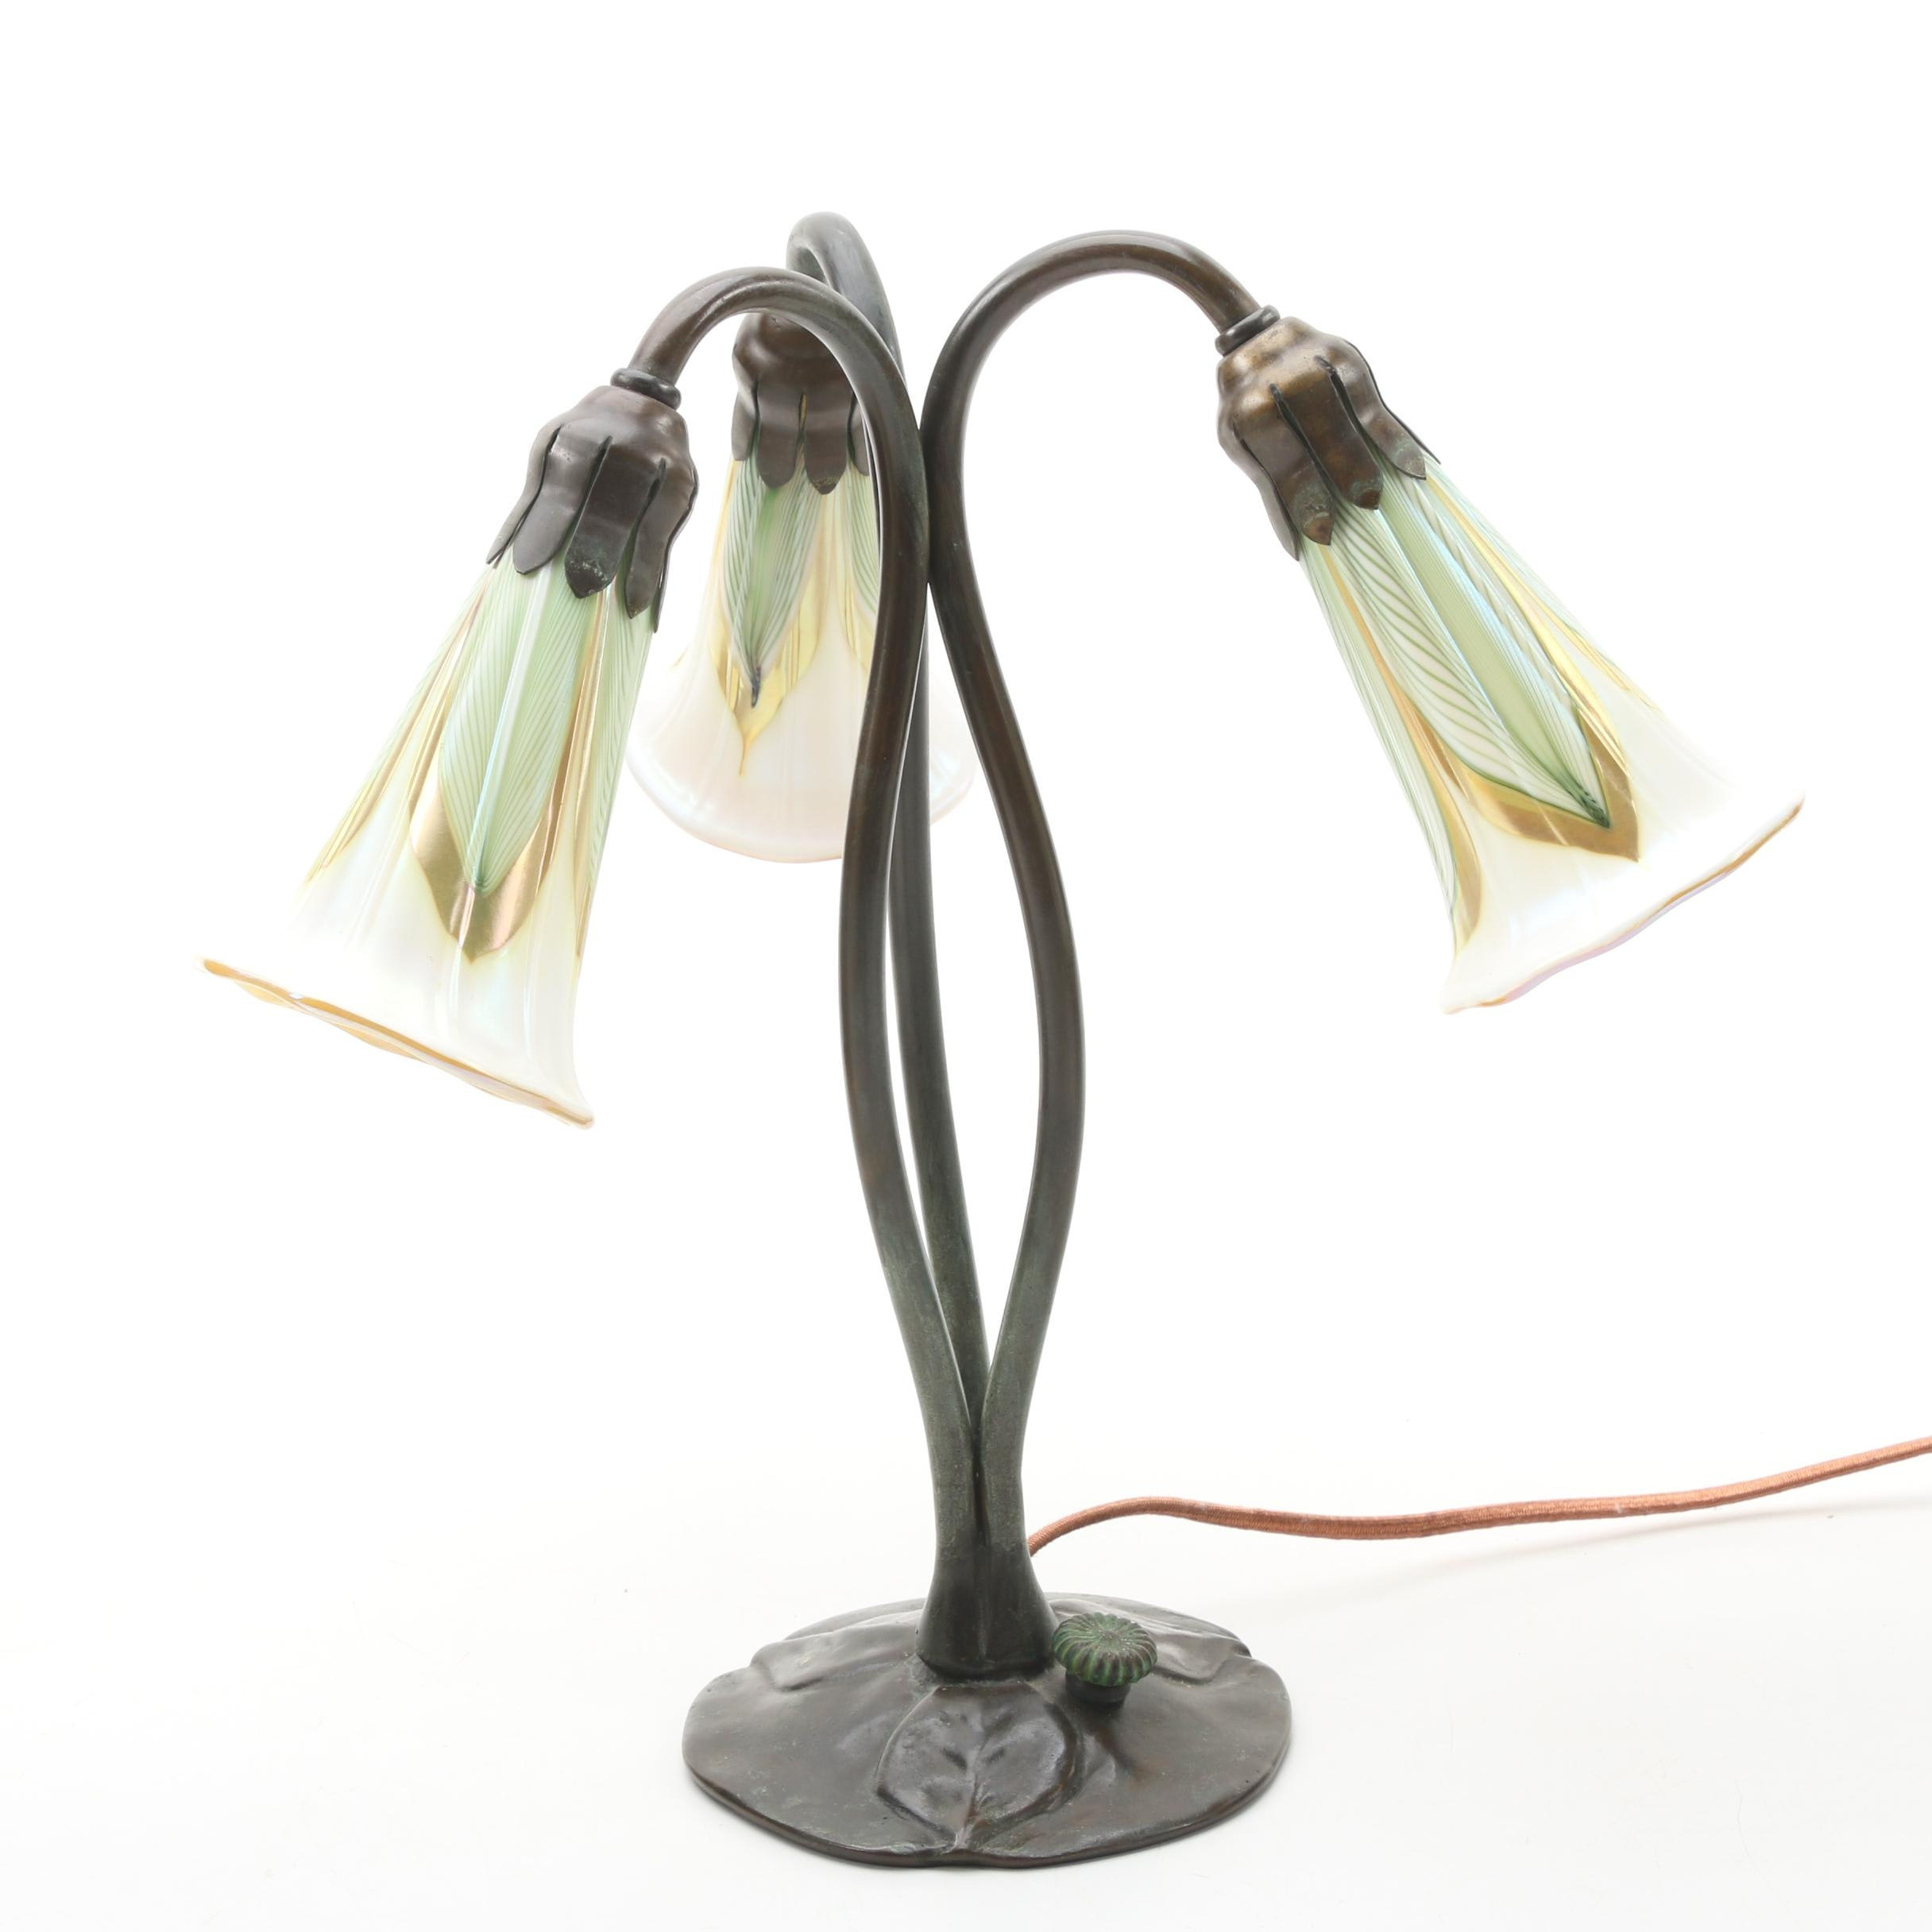 Art Nouveau Bronze Lily Table Lamp with Art Glass Shades, Early 20th C.